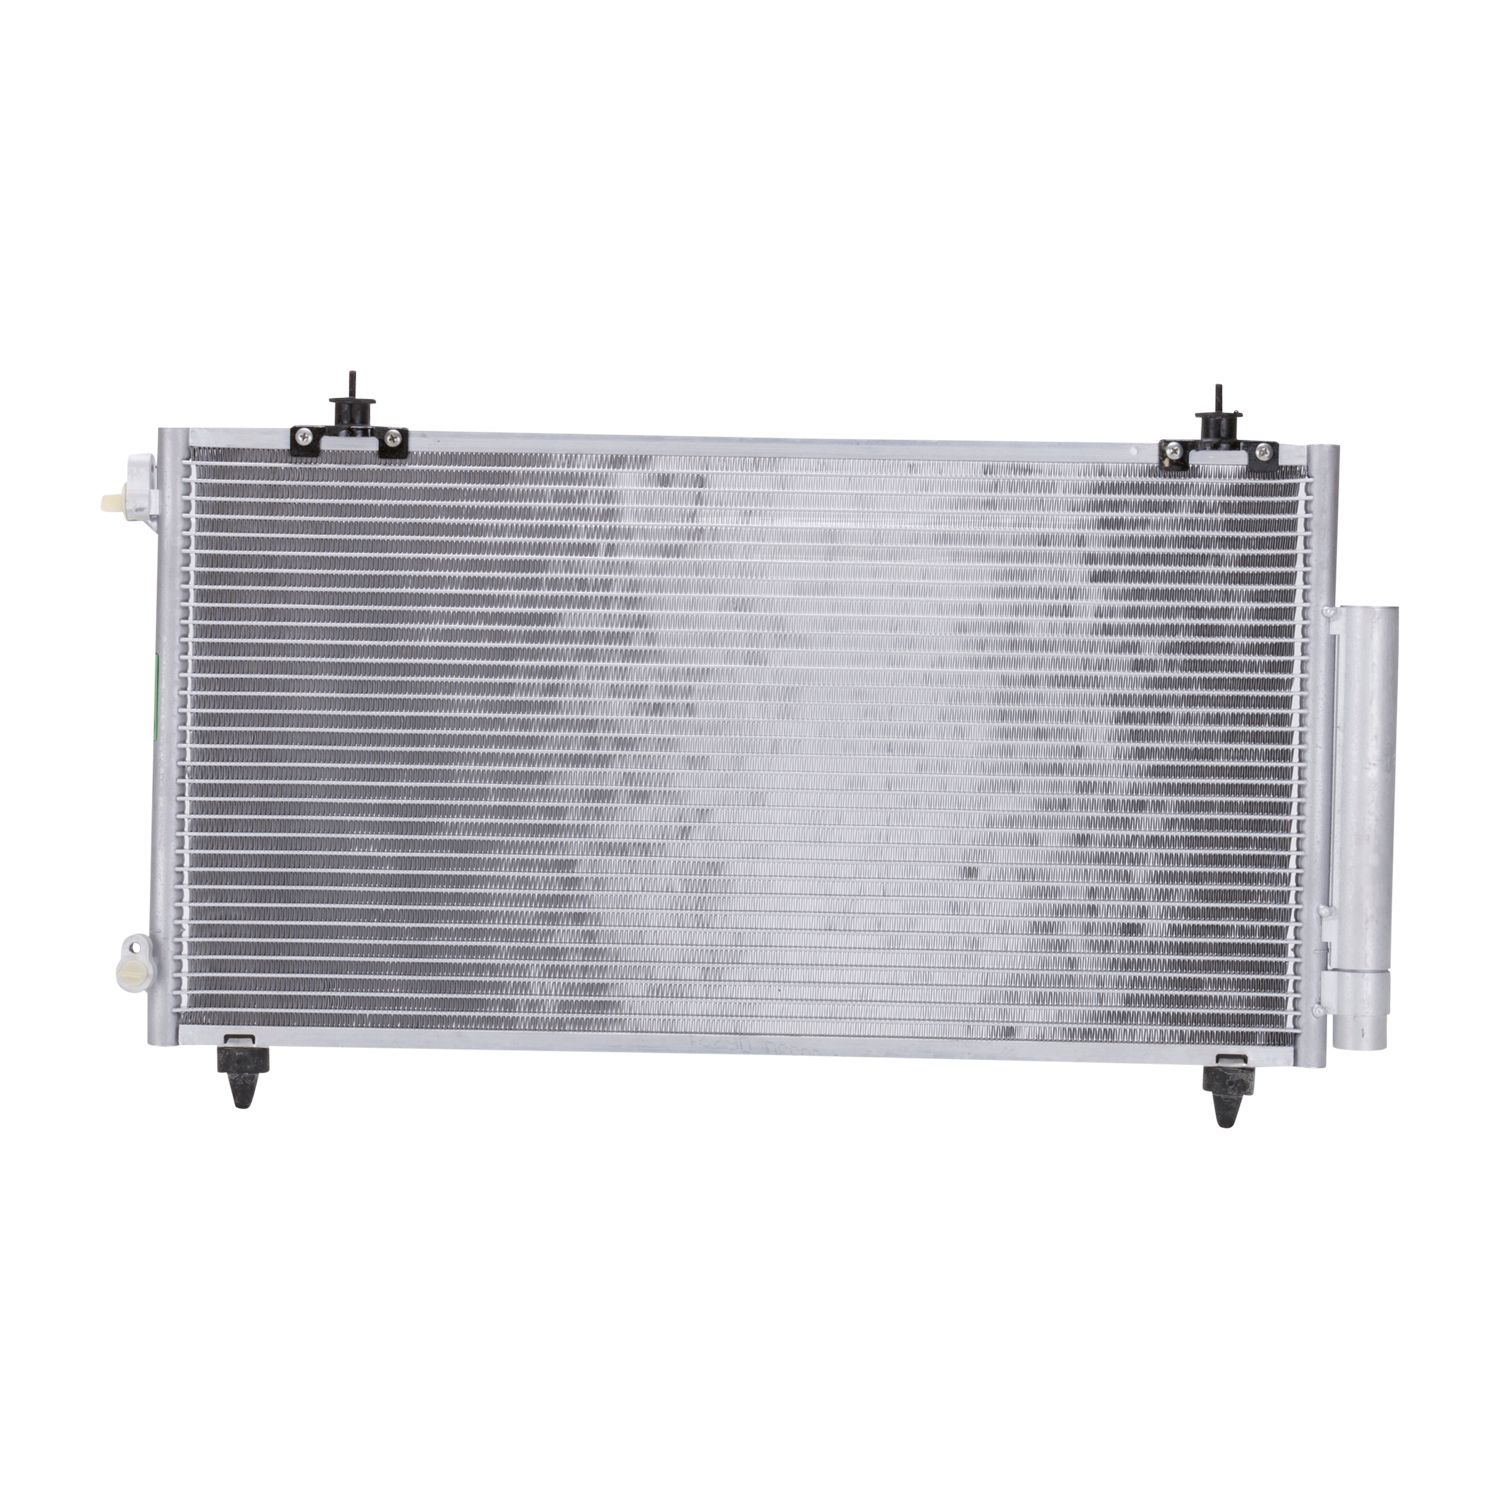 Radiator /& A//C Condenser Kit for 2000-2005 Toyota Celica